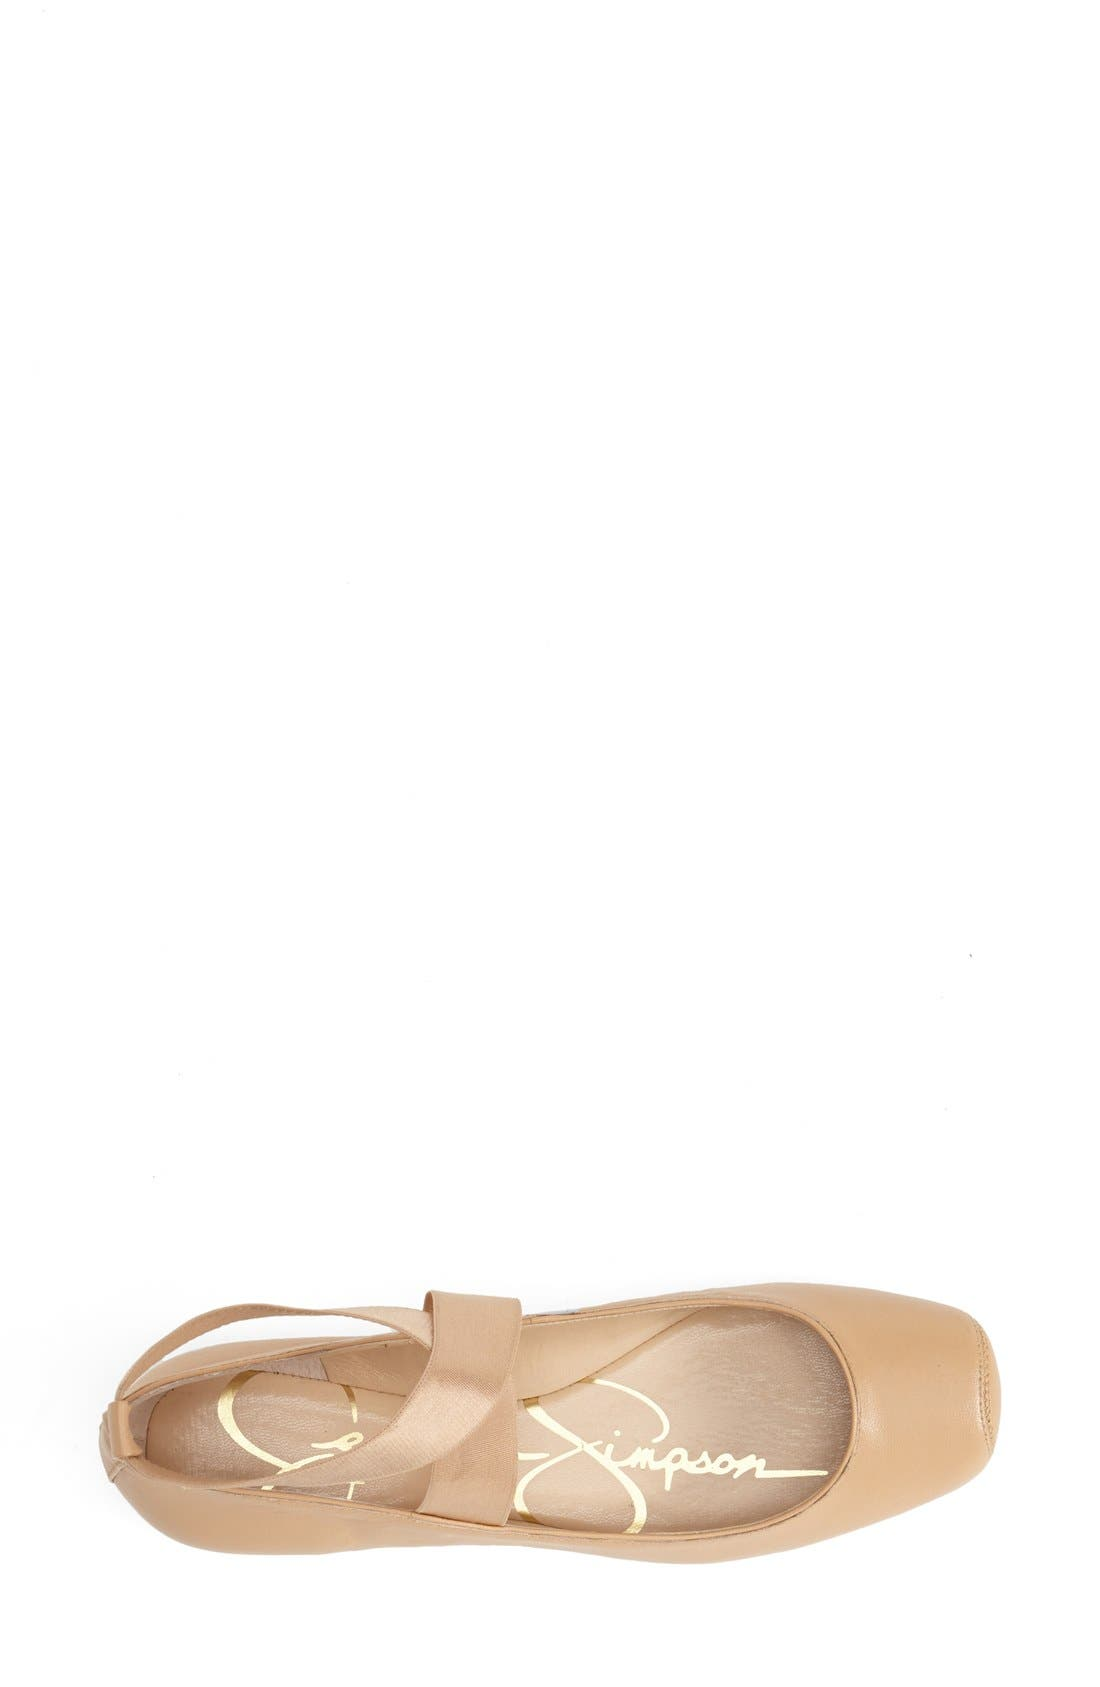 Alternate Image 3  - Jessica Simpson 'Mandalaye' Leather Flat